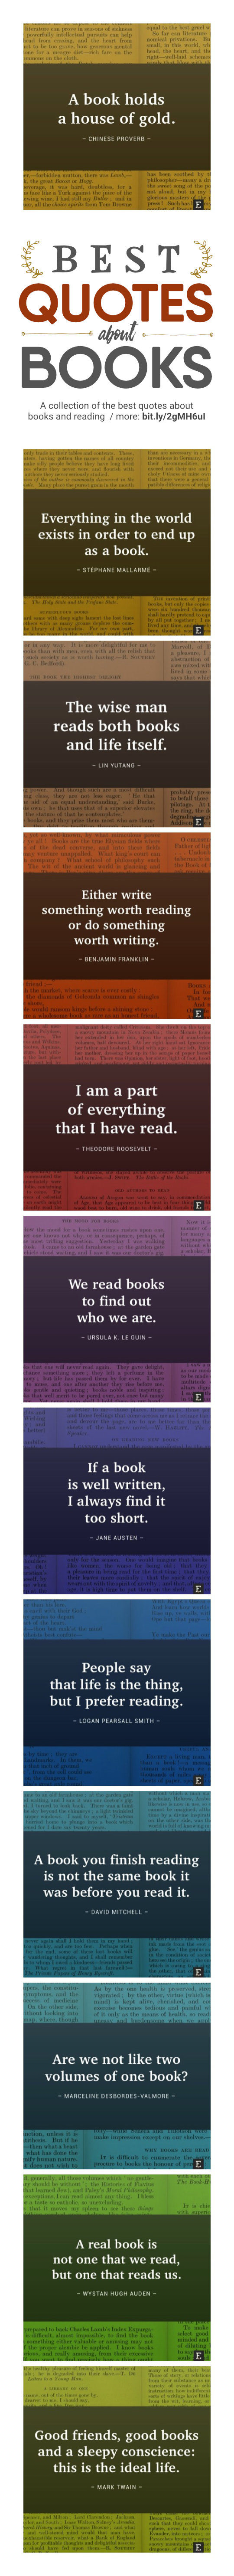 Book quotes in images 25 brilliant thoughts about books visualized best quotes about books visualized infographic fandeluxe Image collections